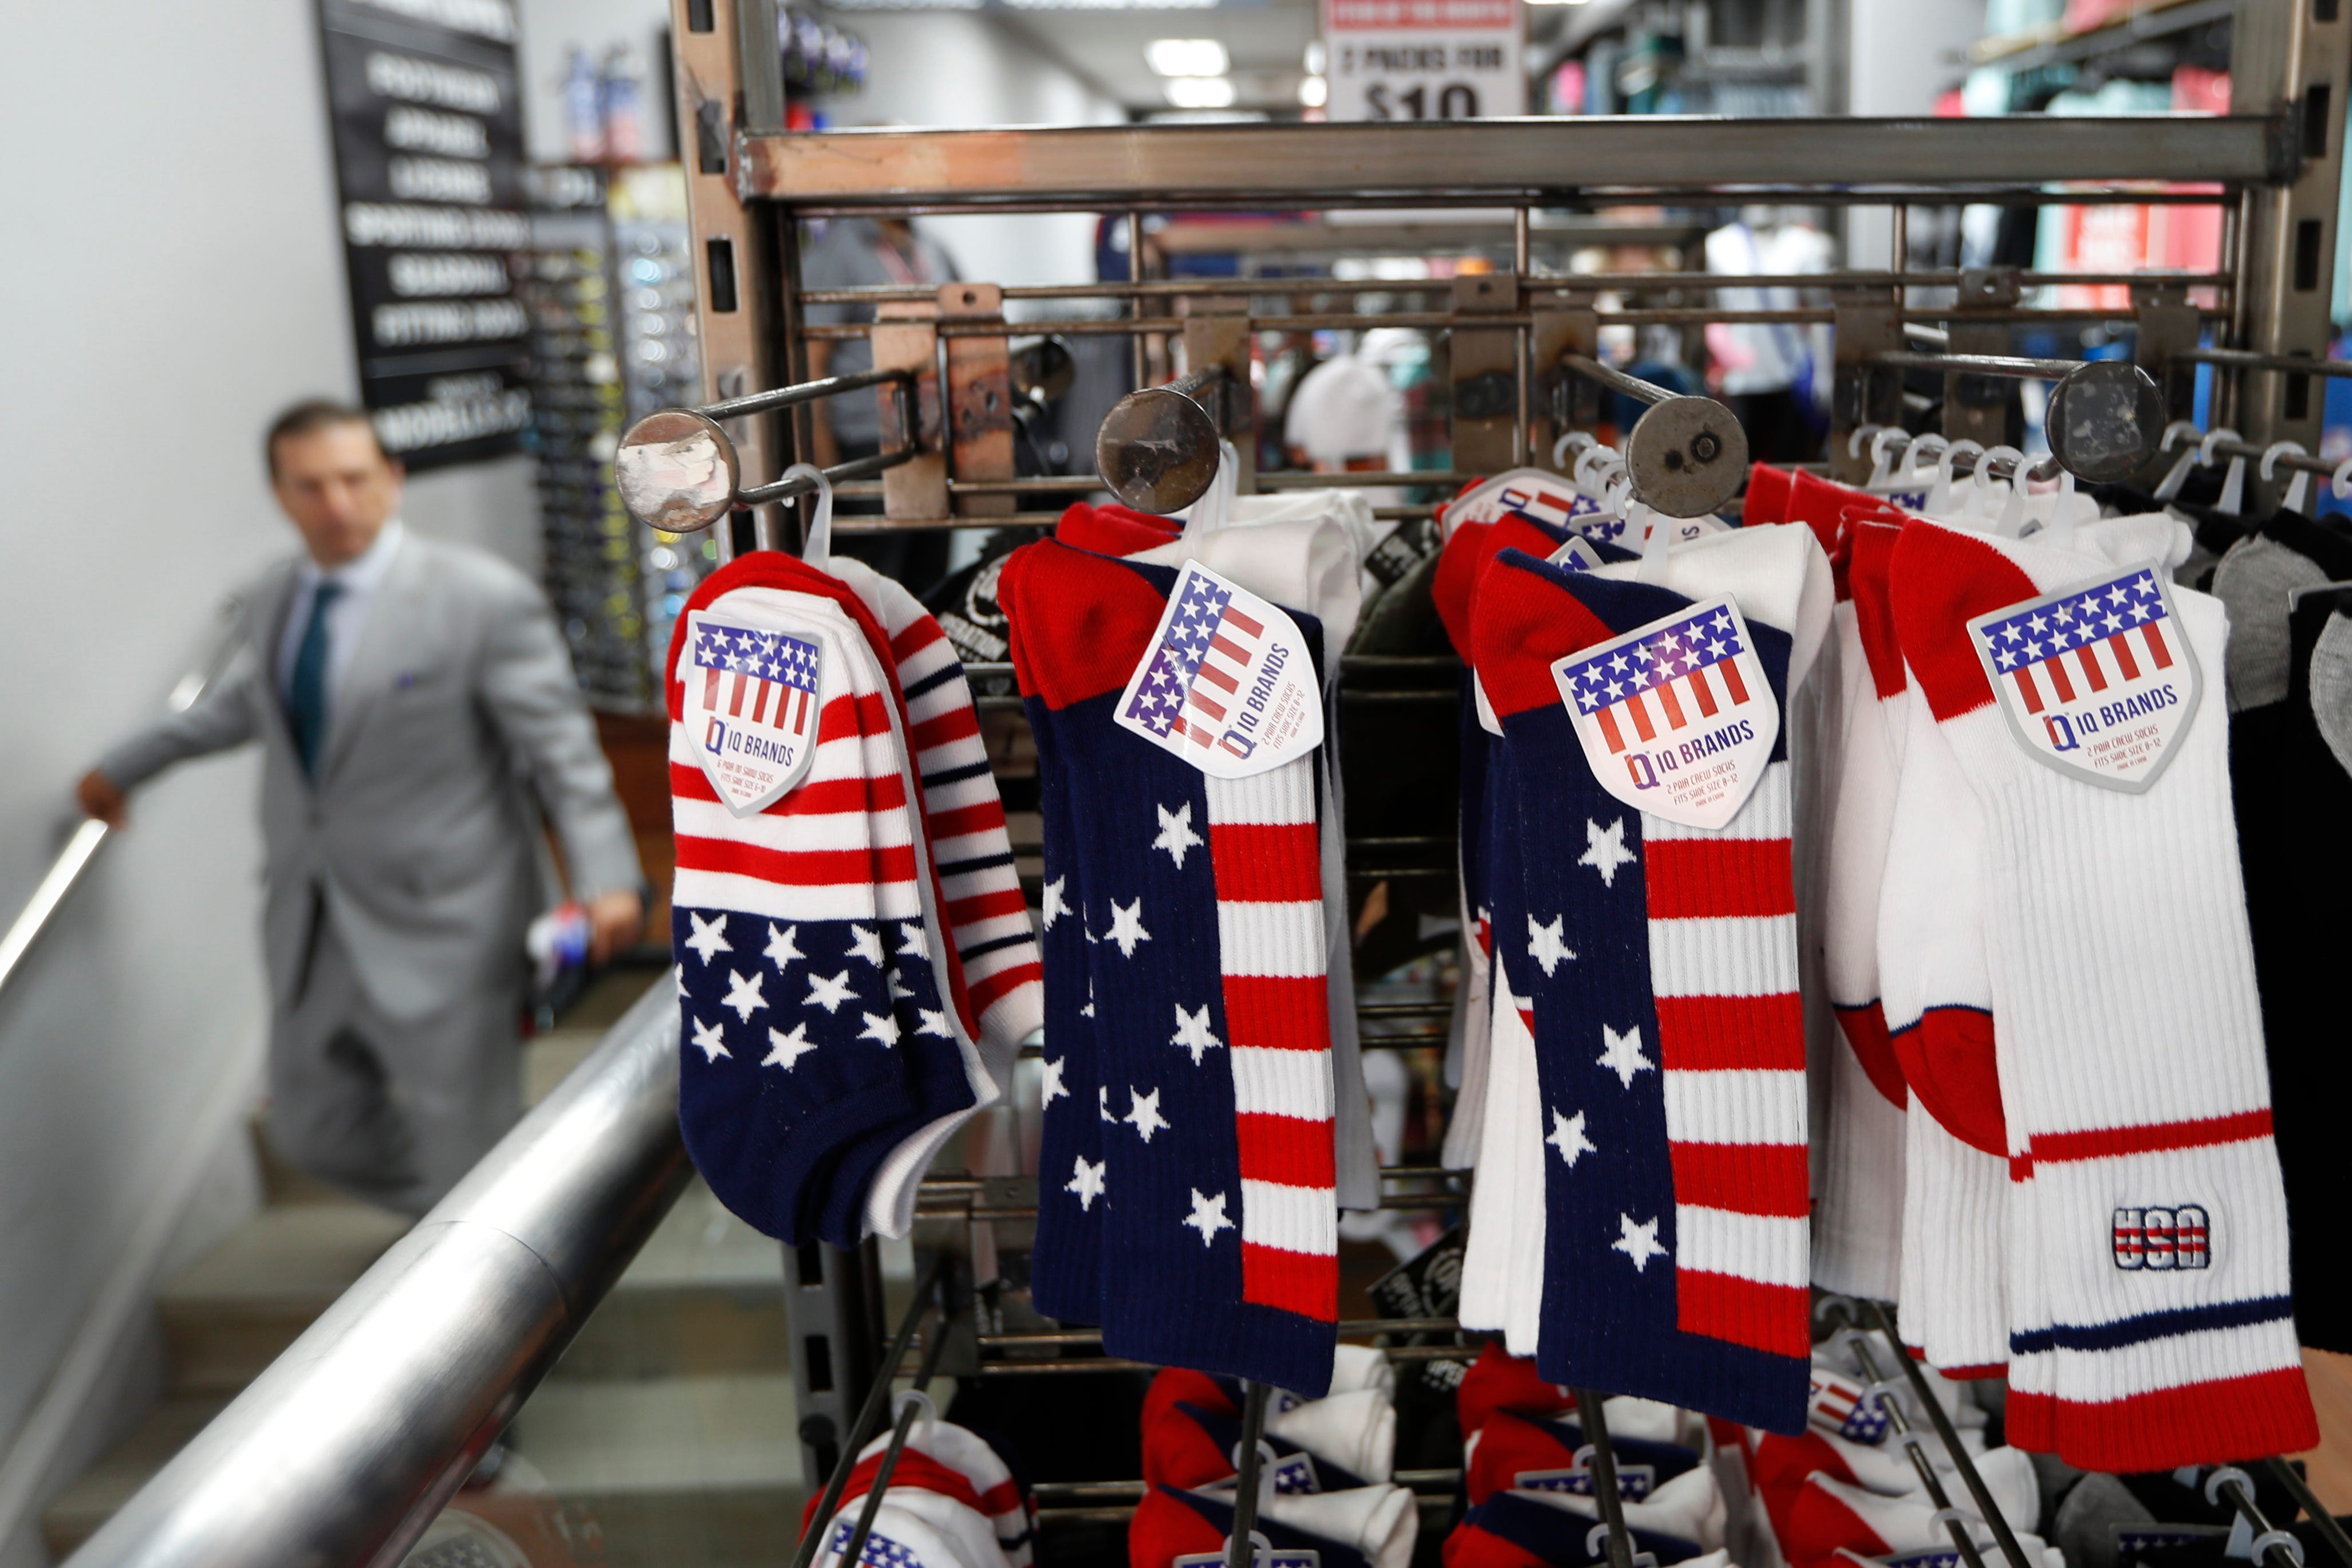 New duties target clothing, TVs, other consumer goods